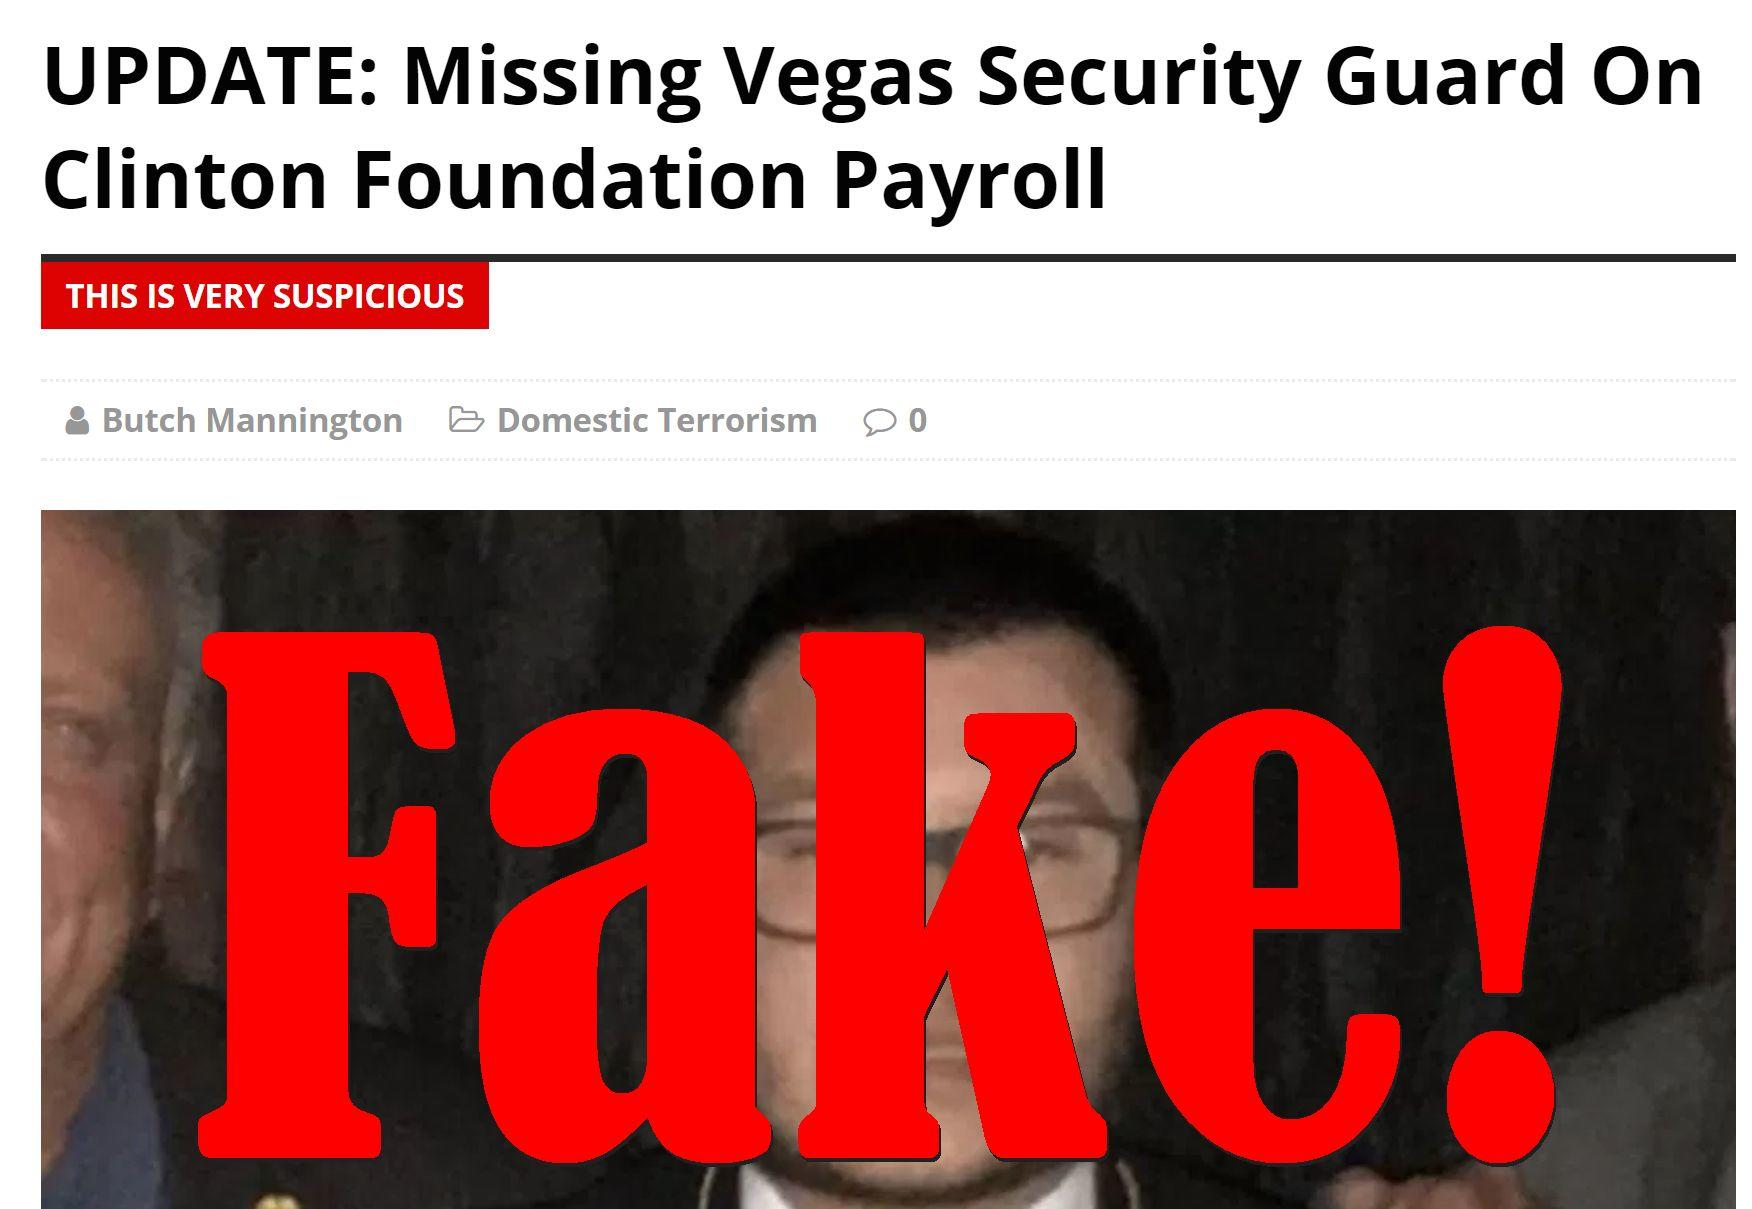 Fake News: Missing Vegas Security Guard NOT On Clinton Foundation Payroll